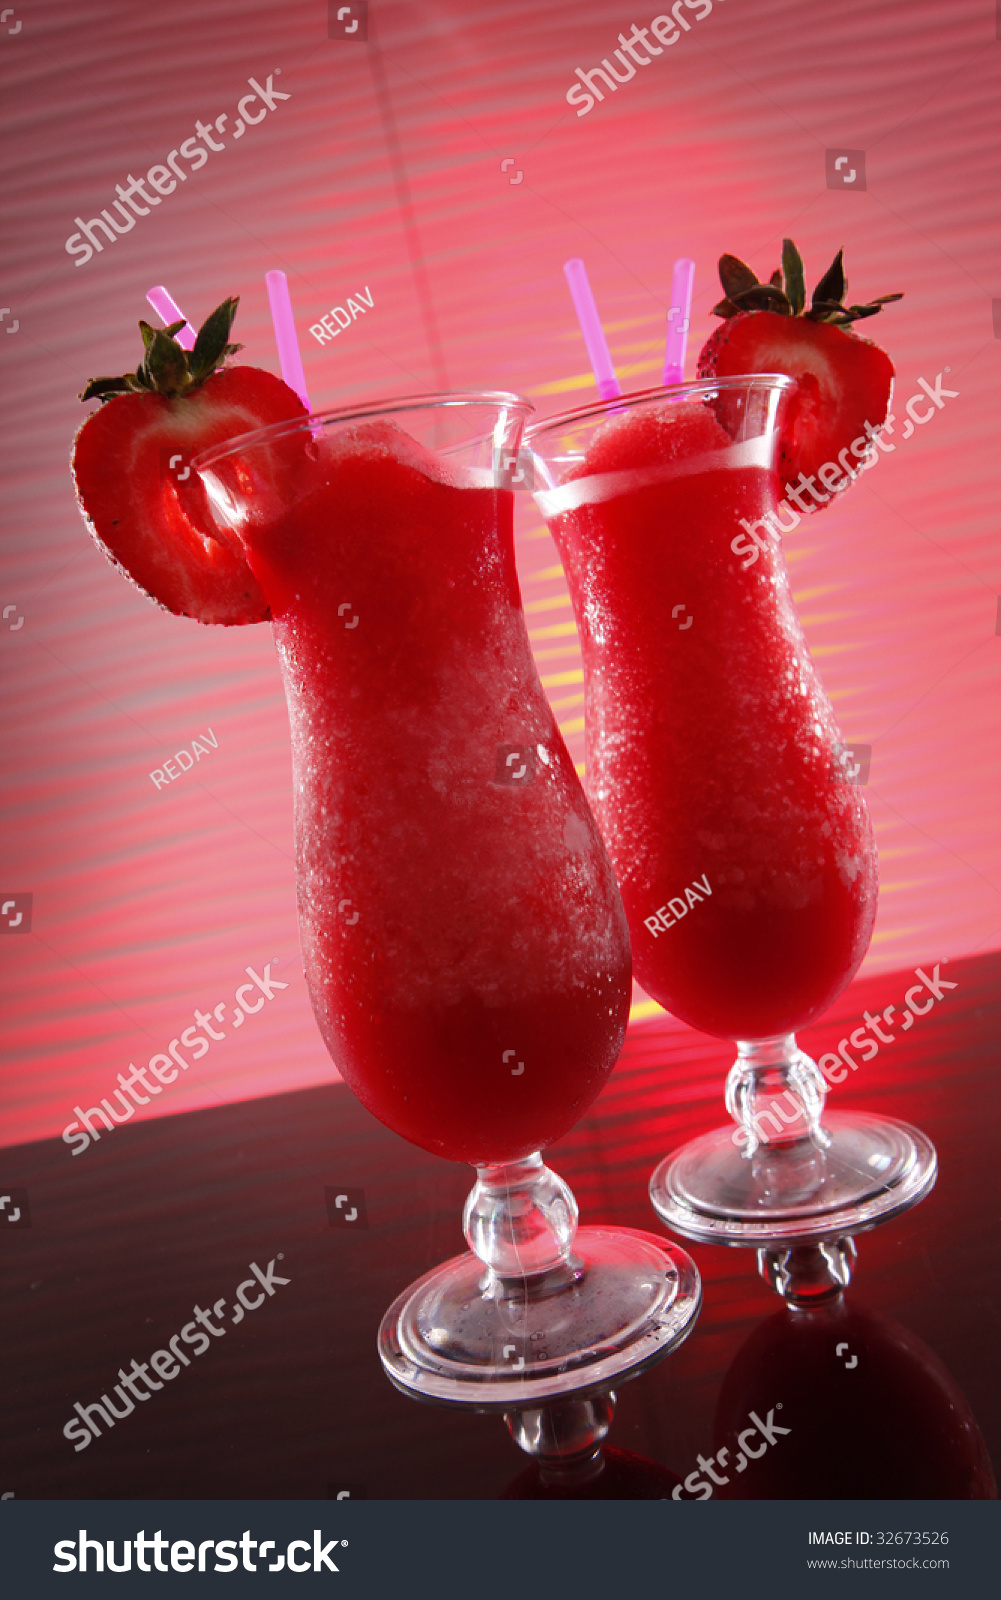 Strawberry Daiquiri Cocktail On Wavy Red May Be An Innocent Smoothie If There'S No Alcohol In It Stock Photo 32673526 : Shutterstock